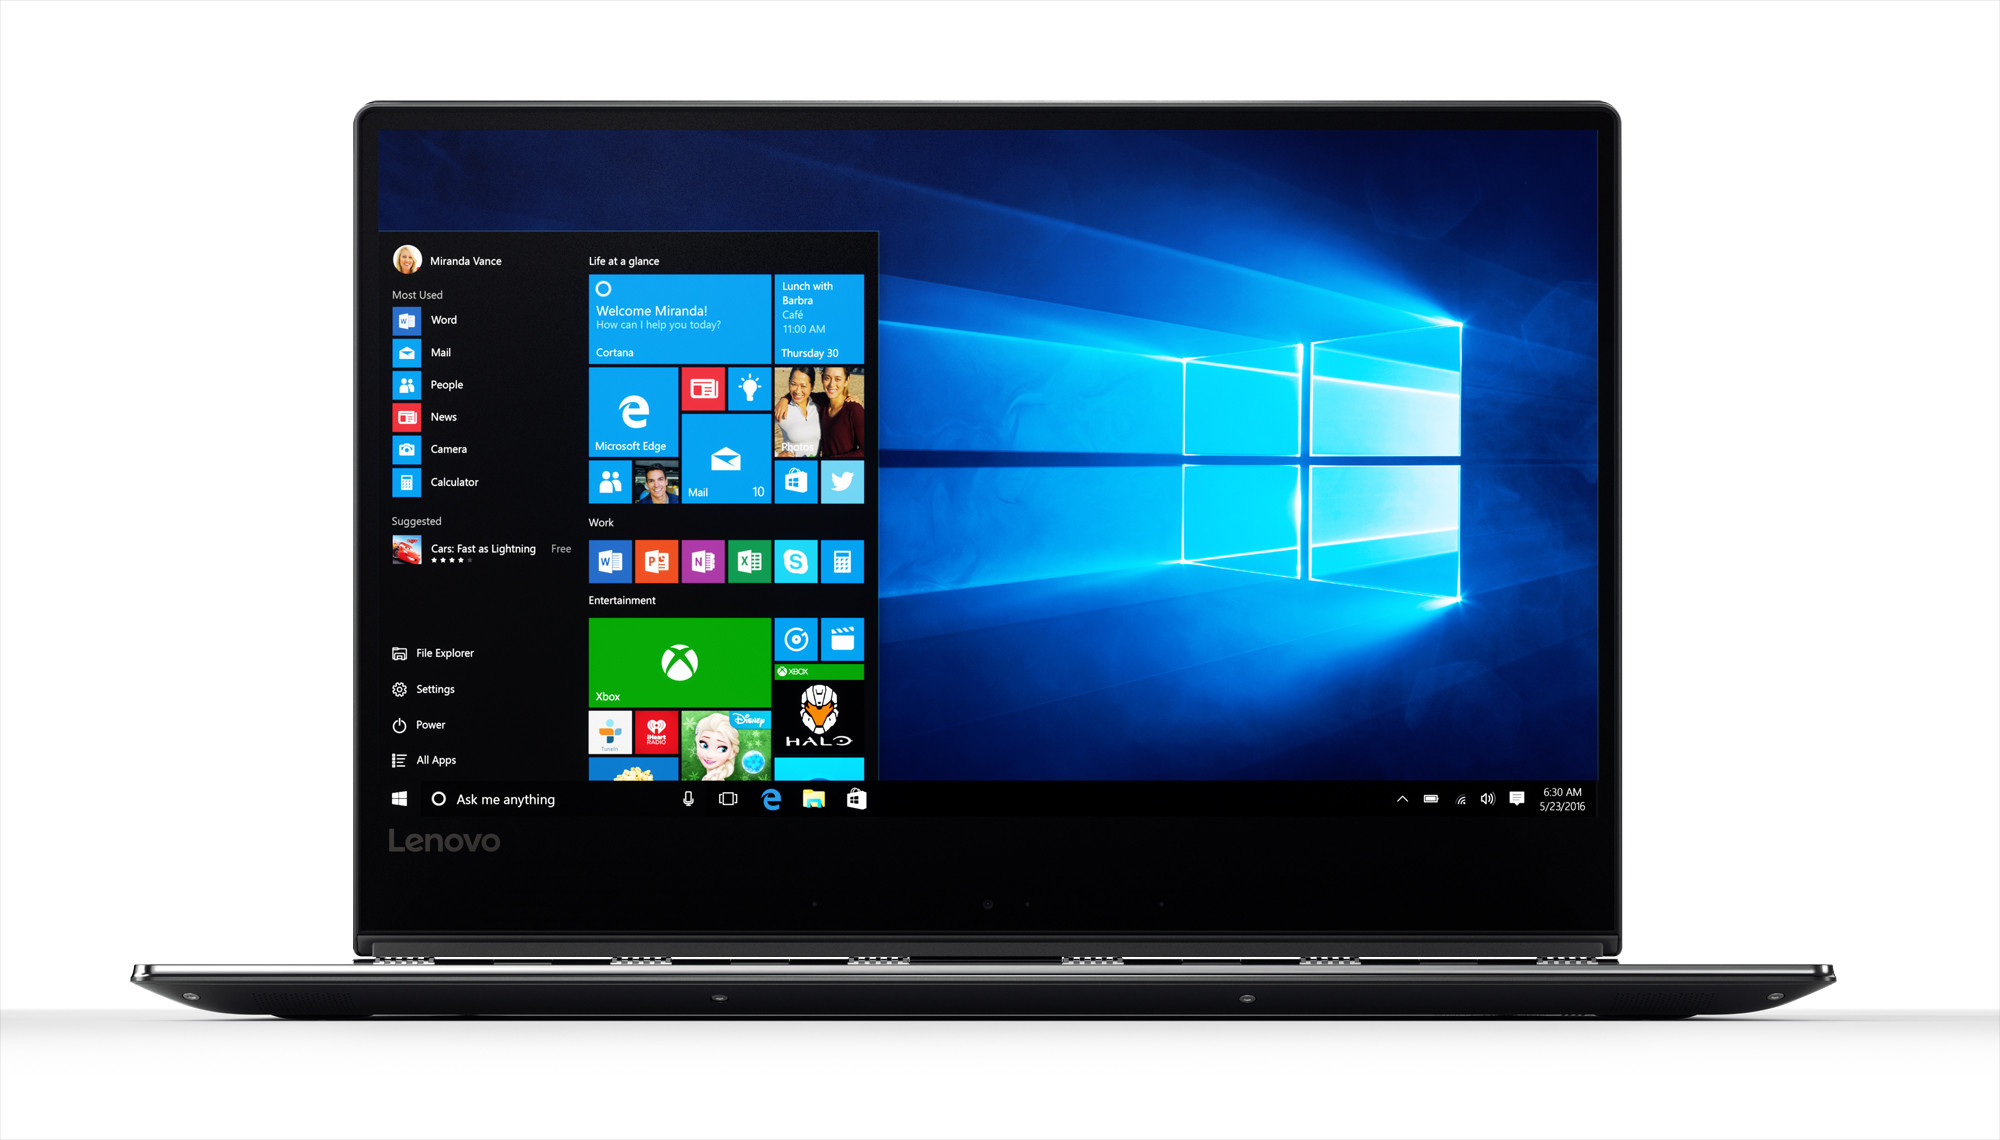 "Lenovo YOGA 910 Glass SE i7-7500U 3,50GHz/16GB/1TB SSD/13,9"" 4K/IPS/multitouch/WIN10PRO stříbrná 80VG0027CK"